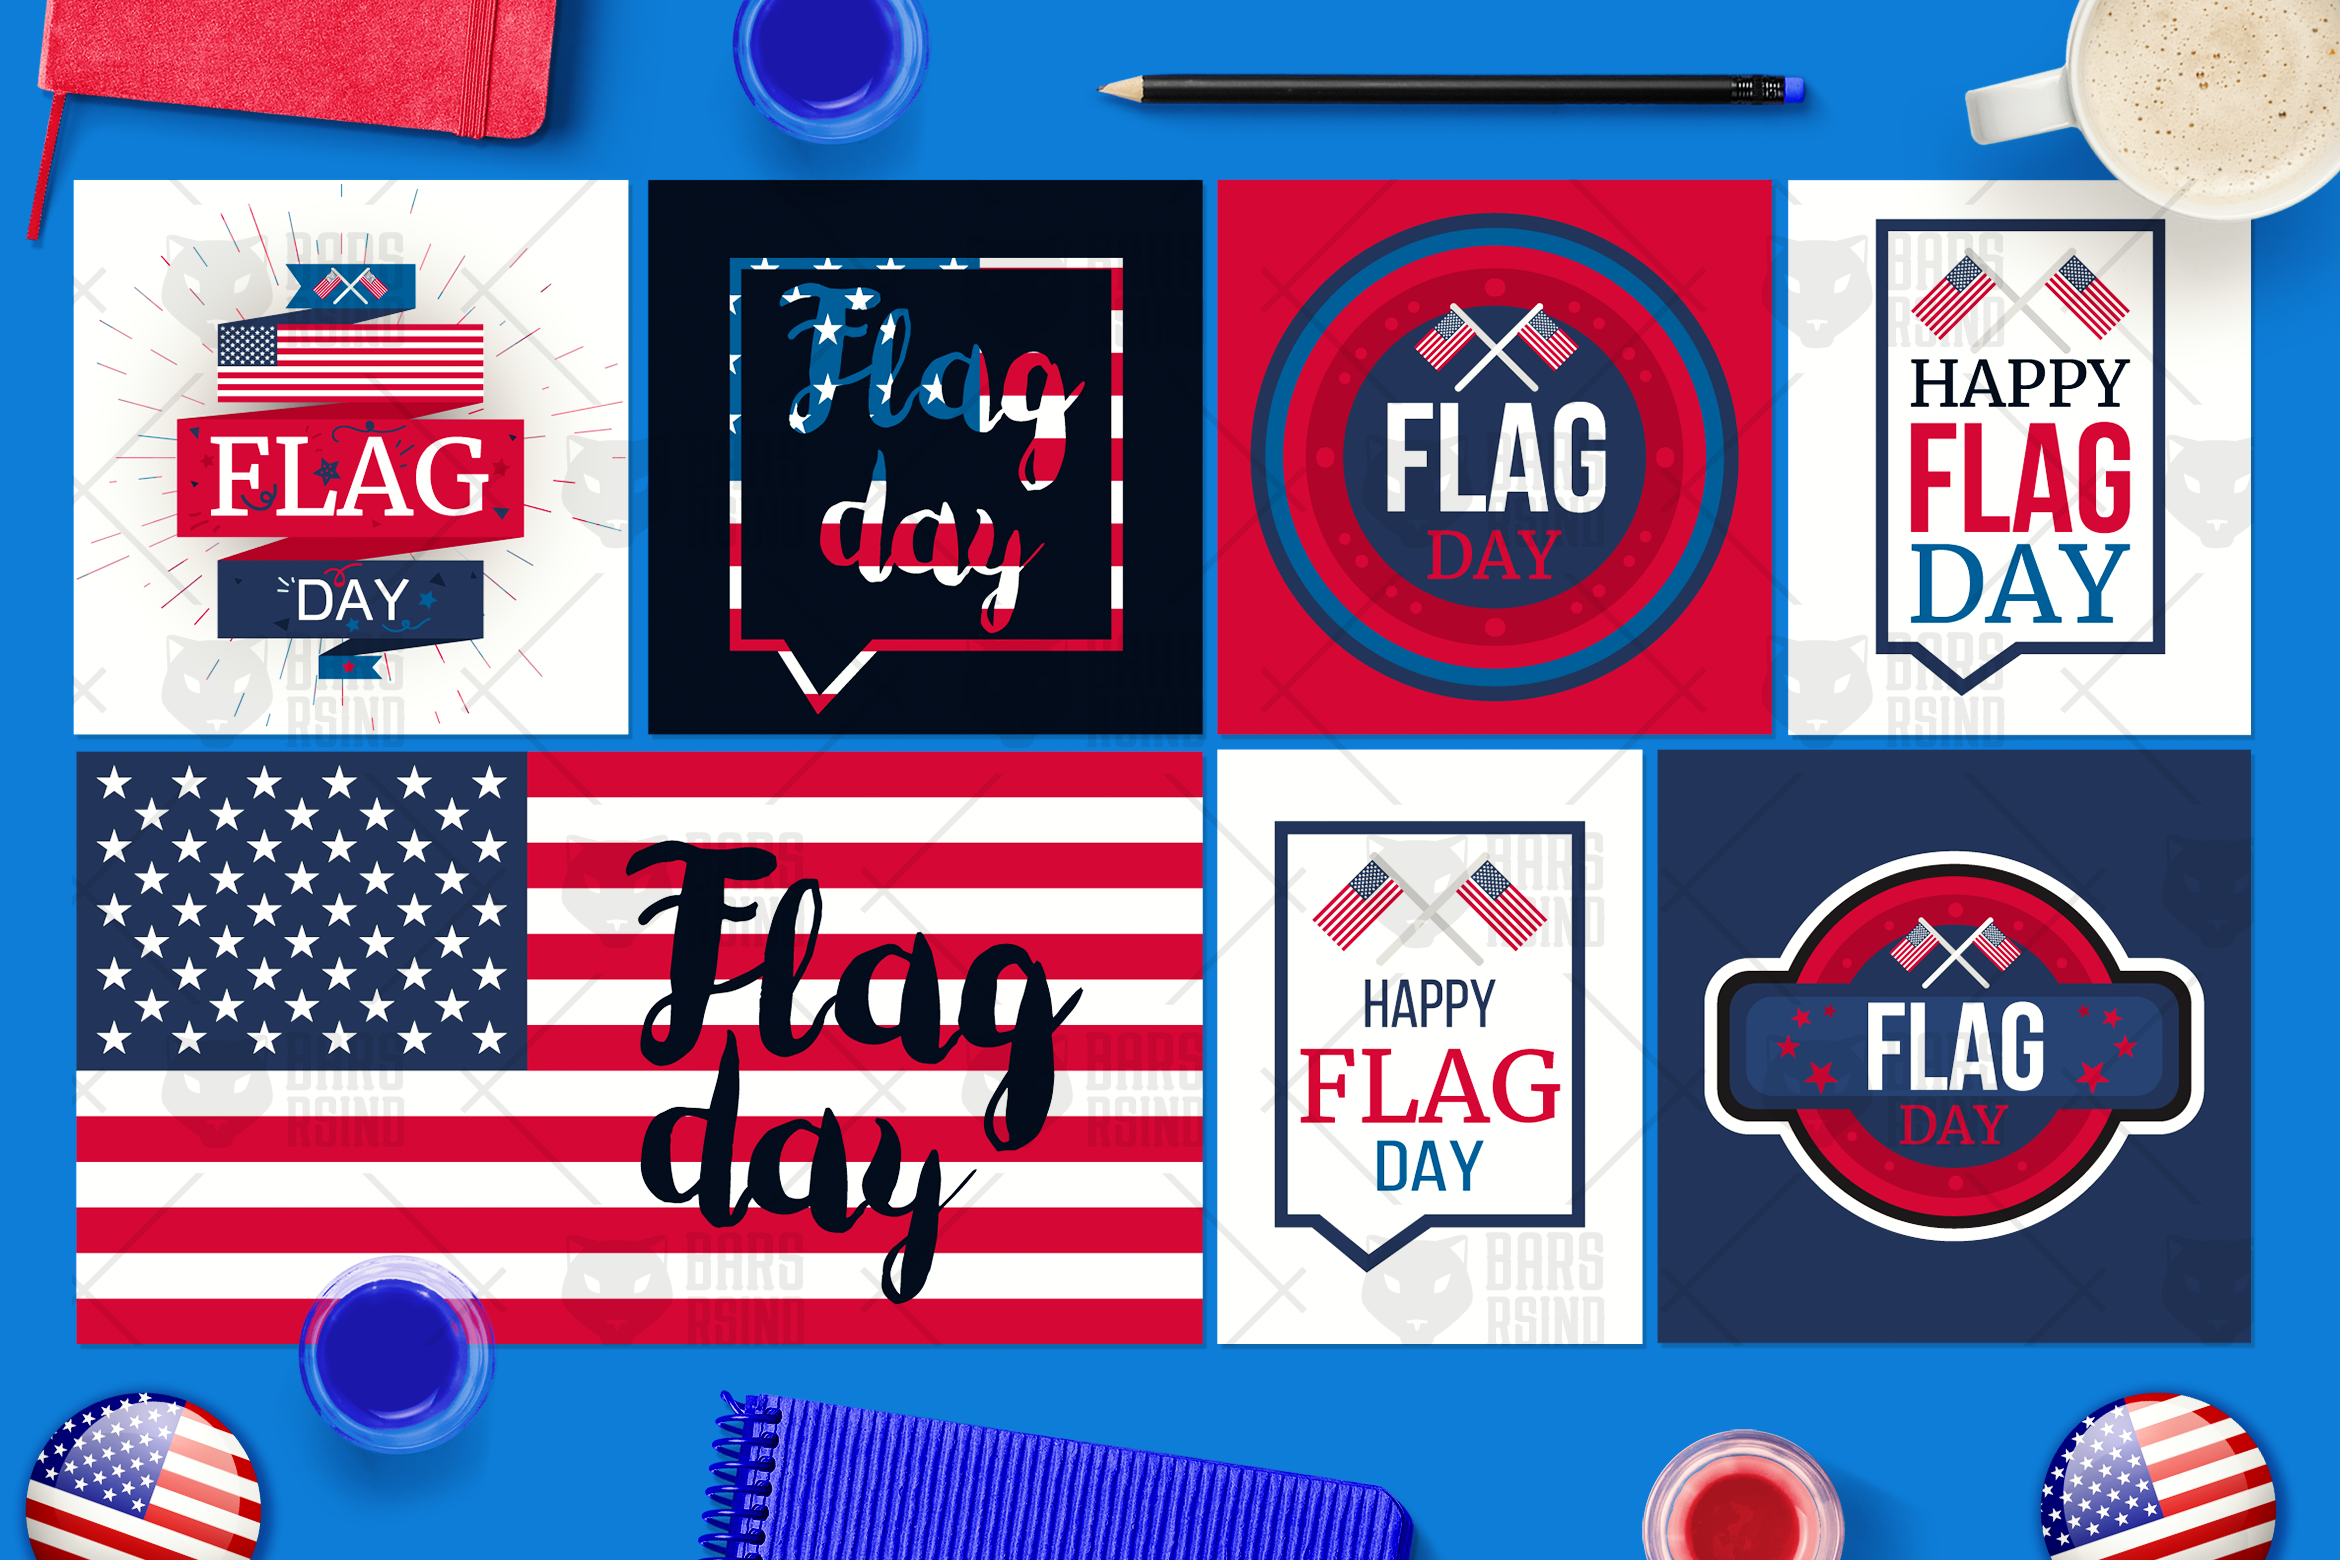 Flag Day Banners example image 1